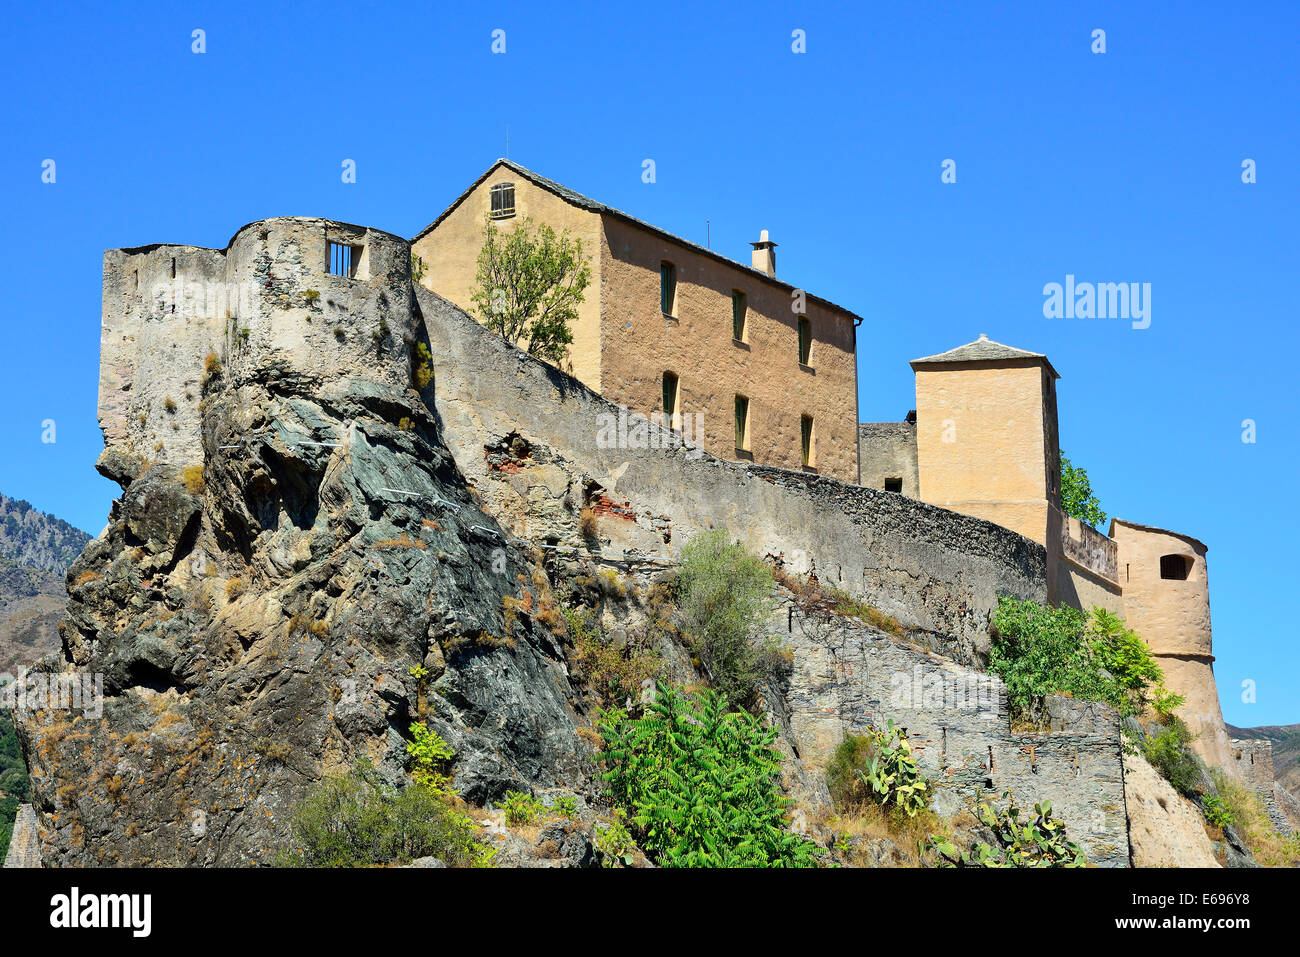 The citadel with the Eagle's Nest bastion, Corte, Corsica, France - Stock Image